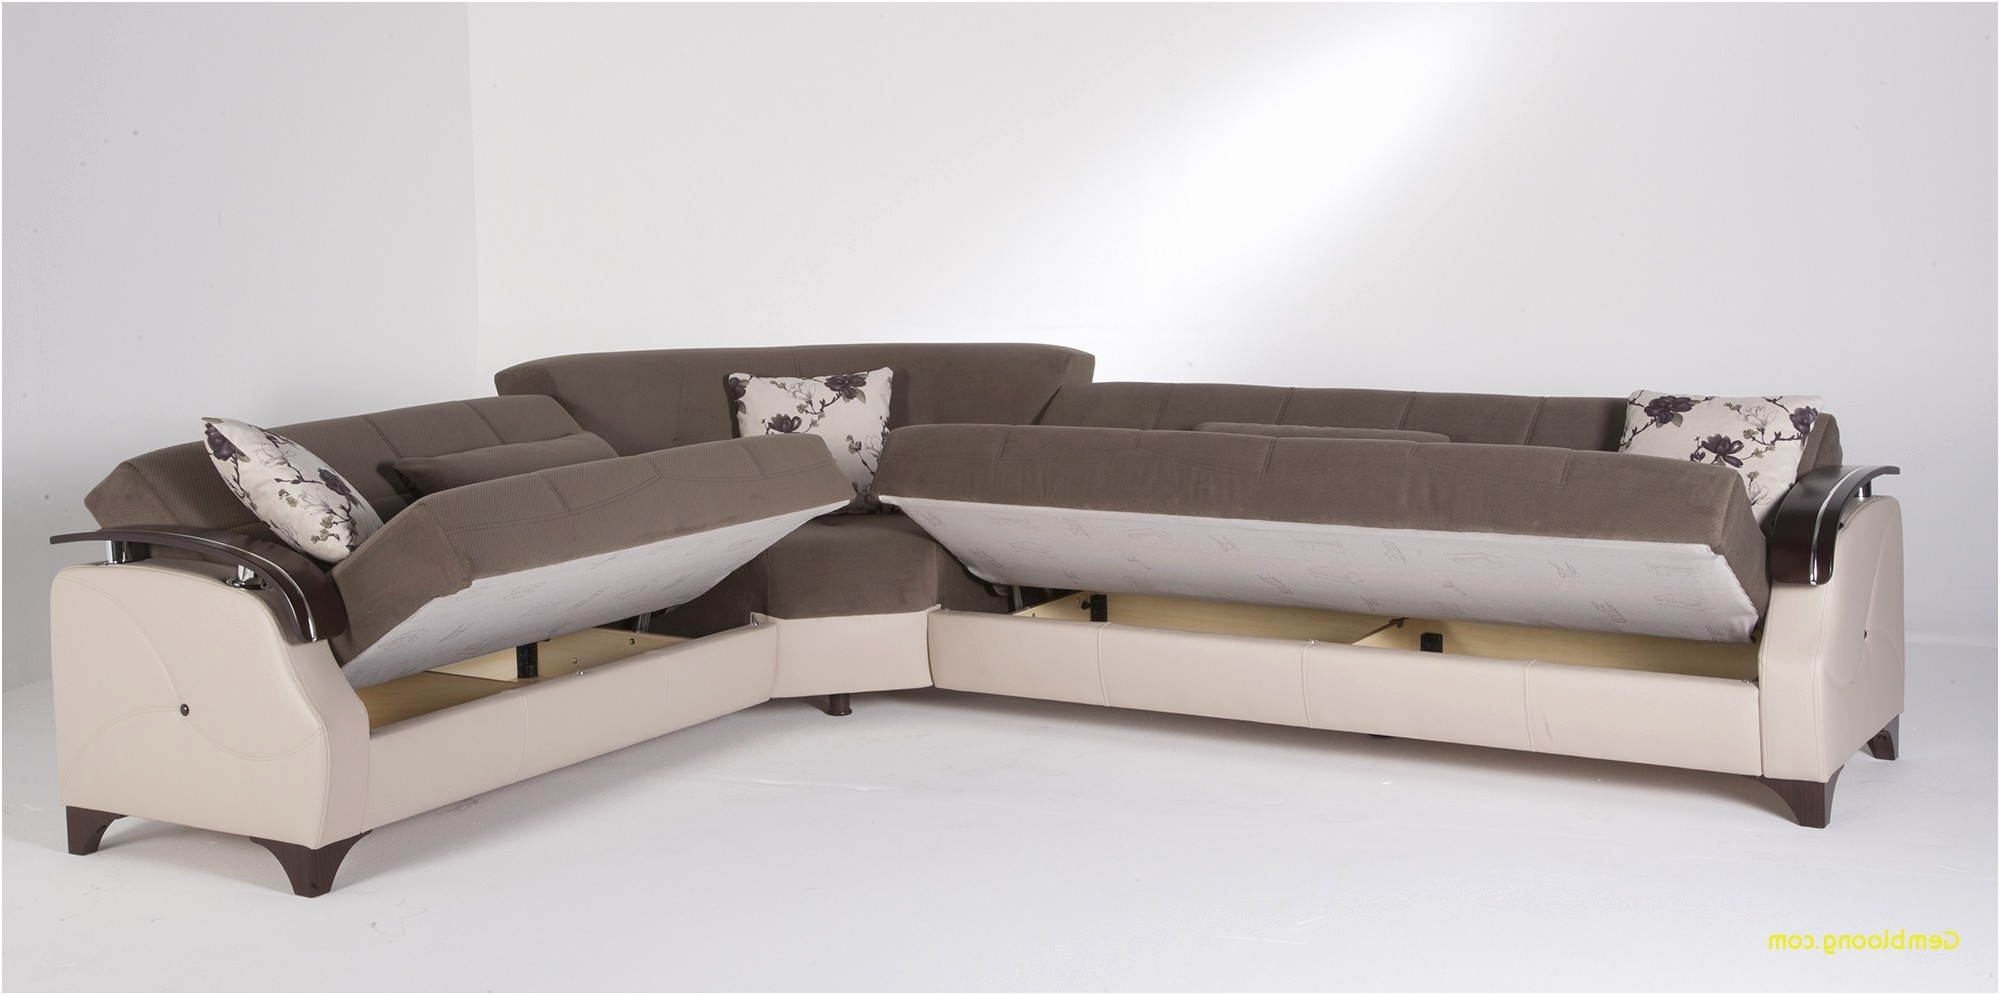 Sleeper Sectionals With Chaise Regarding Most Current Sleeper Sectionals With Chaise Beautiful Sleeper Sectional Sofa (View 8 of 15)